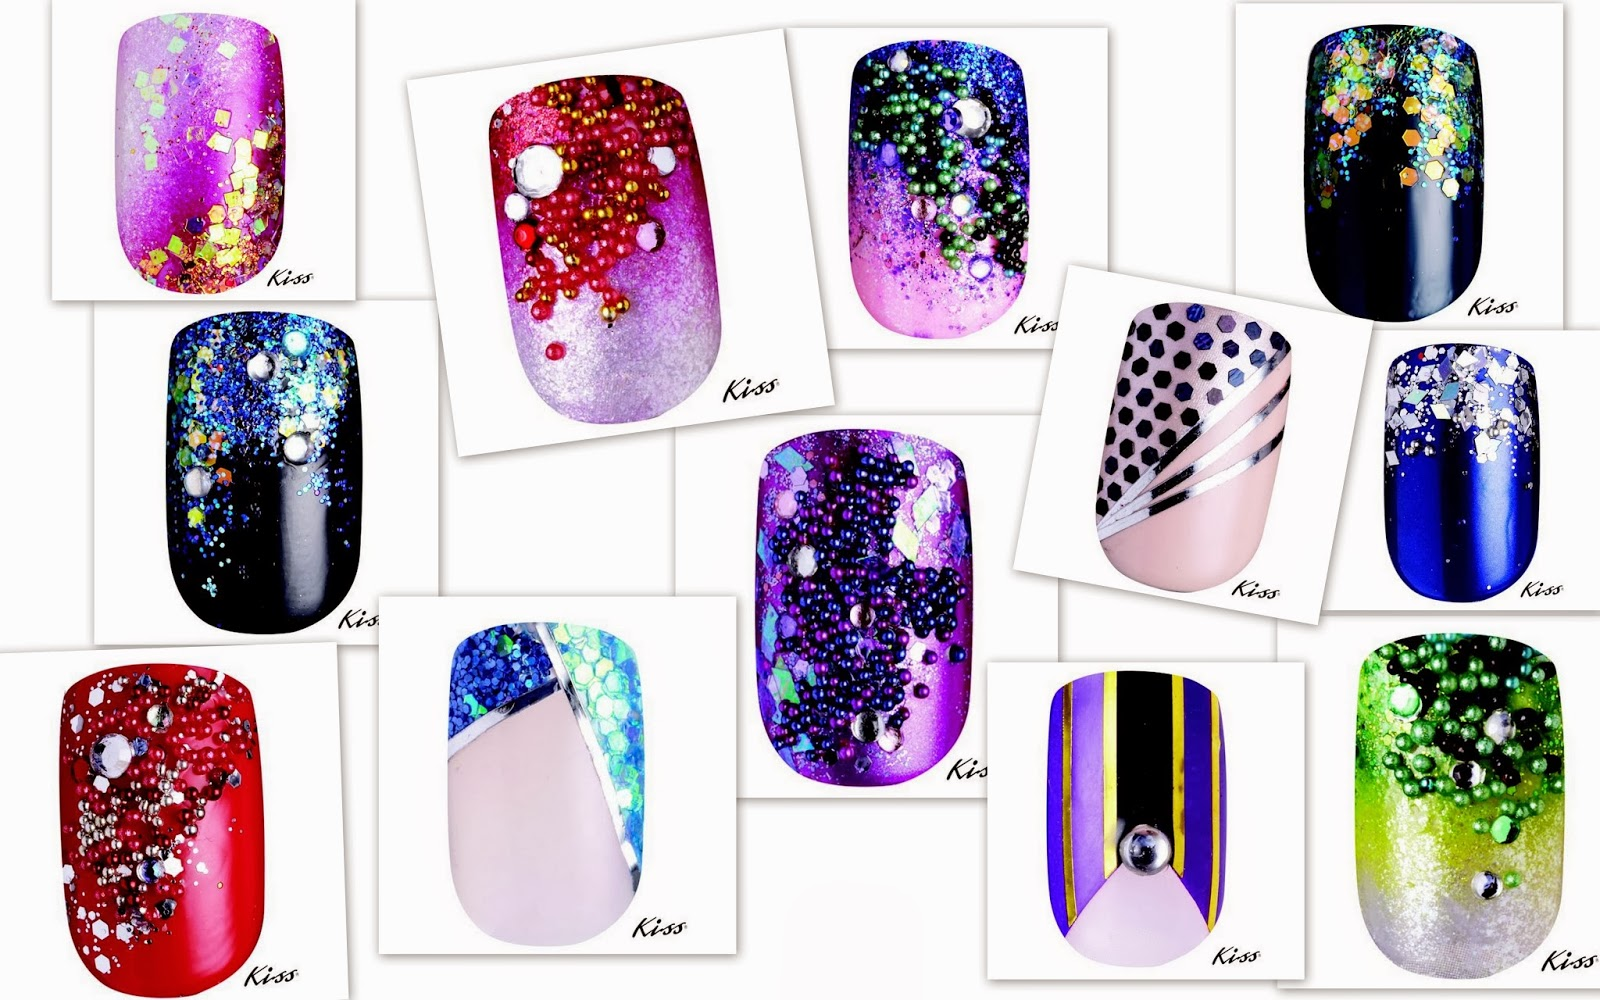 DIY Nail Art with Kiss Disney Villains Series | The Nail Polish Exchange